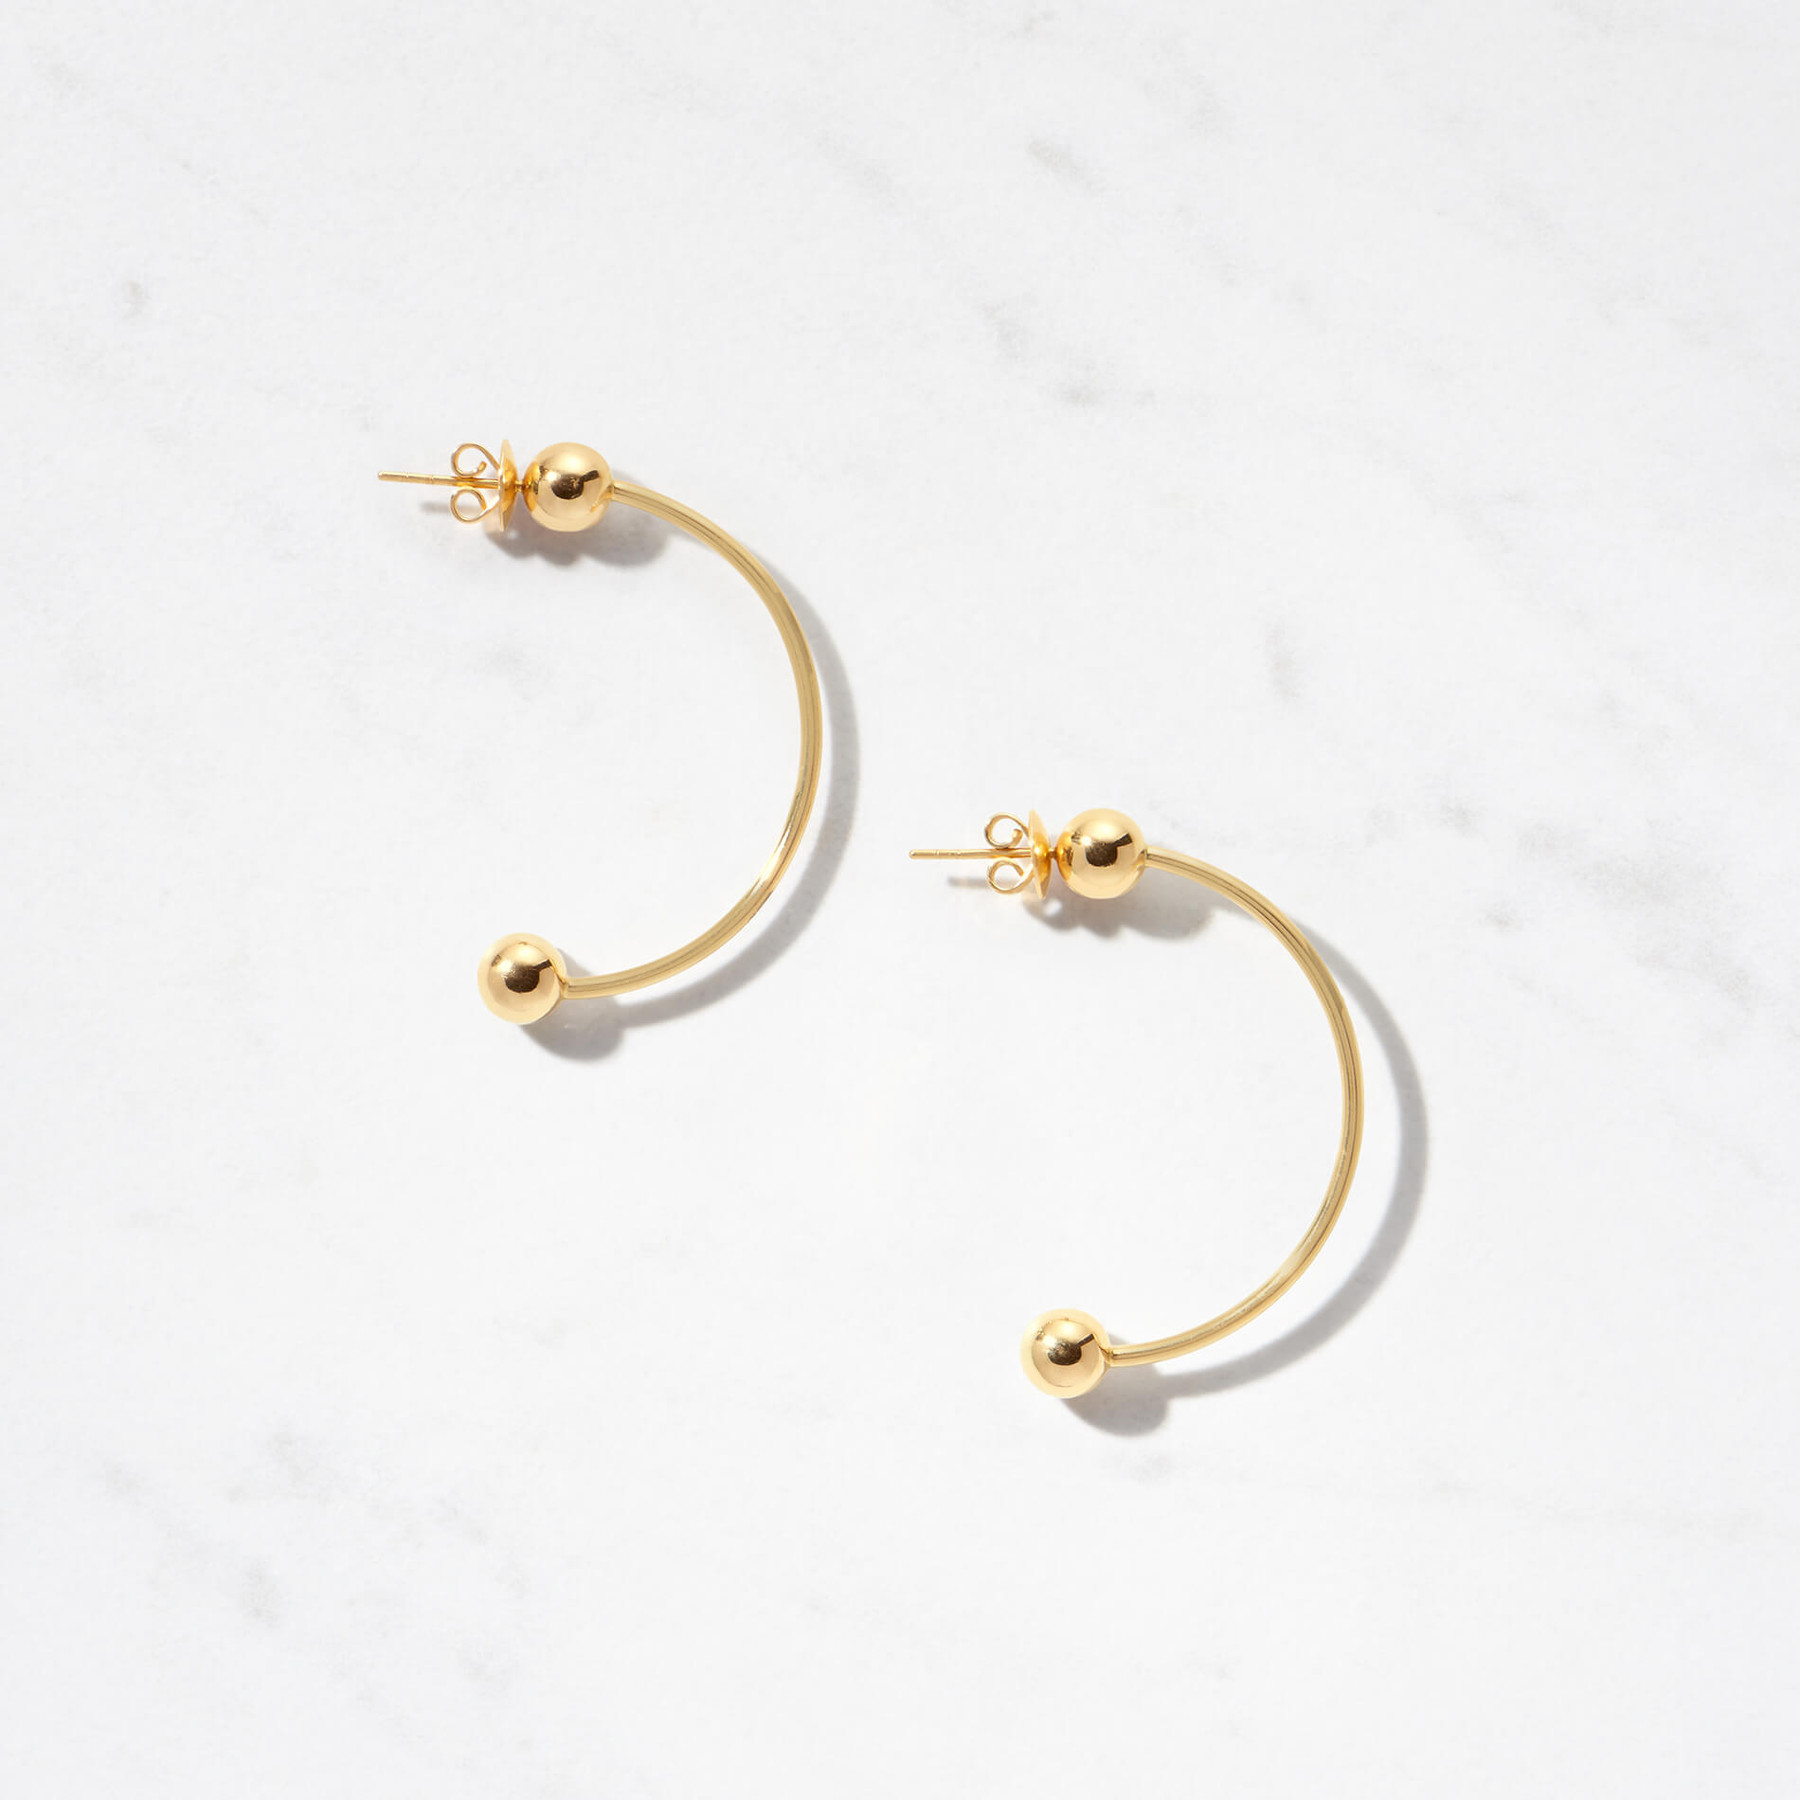 Two golden moons grace the ends of an arc to create our Celestia II Earrings. With a gold weight of about 15 grams, Celestia II is handcrafted from 22 karat polished gold.